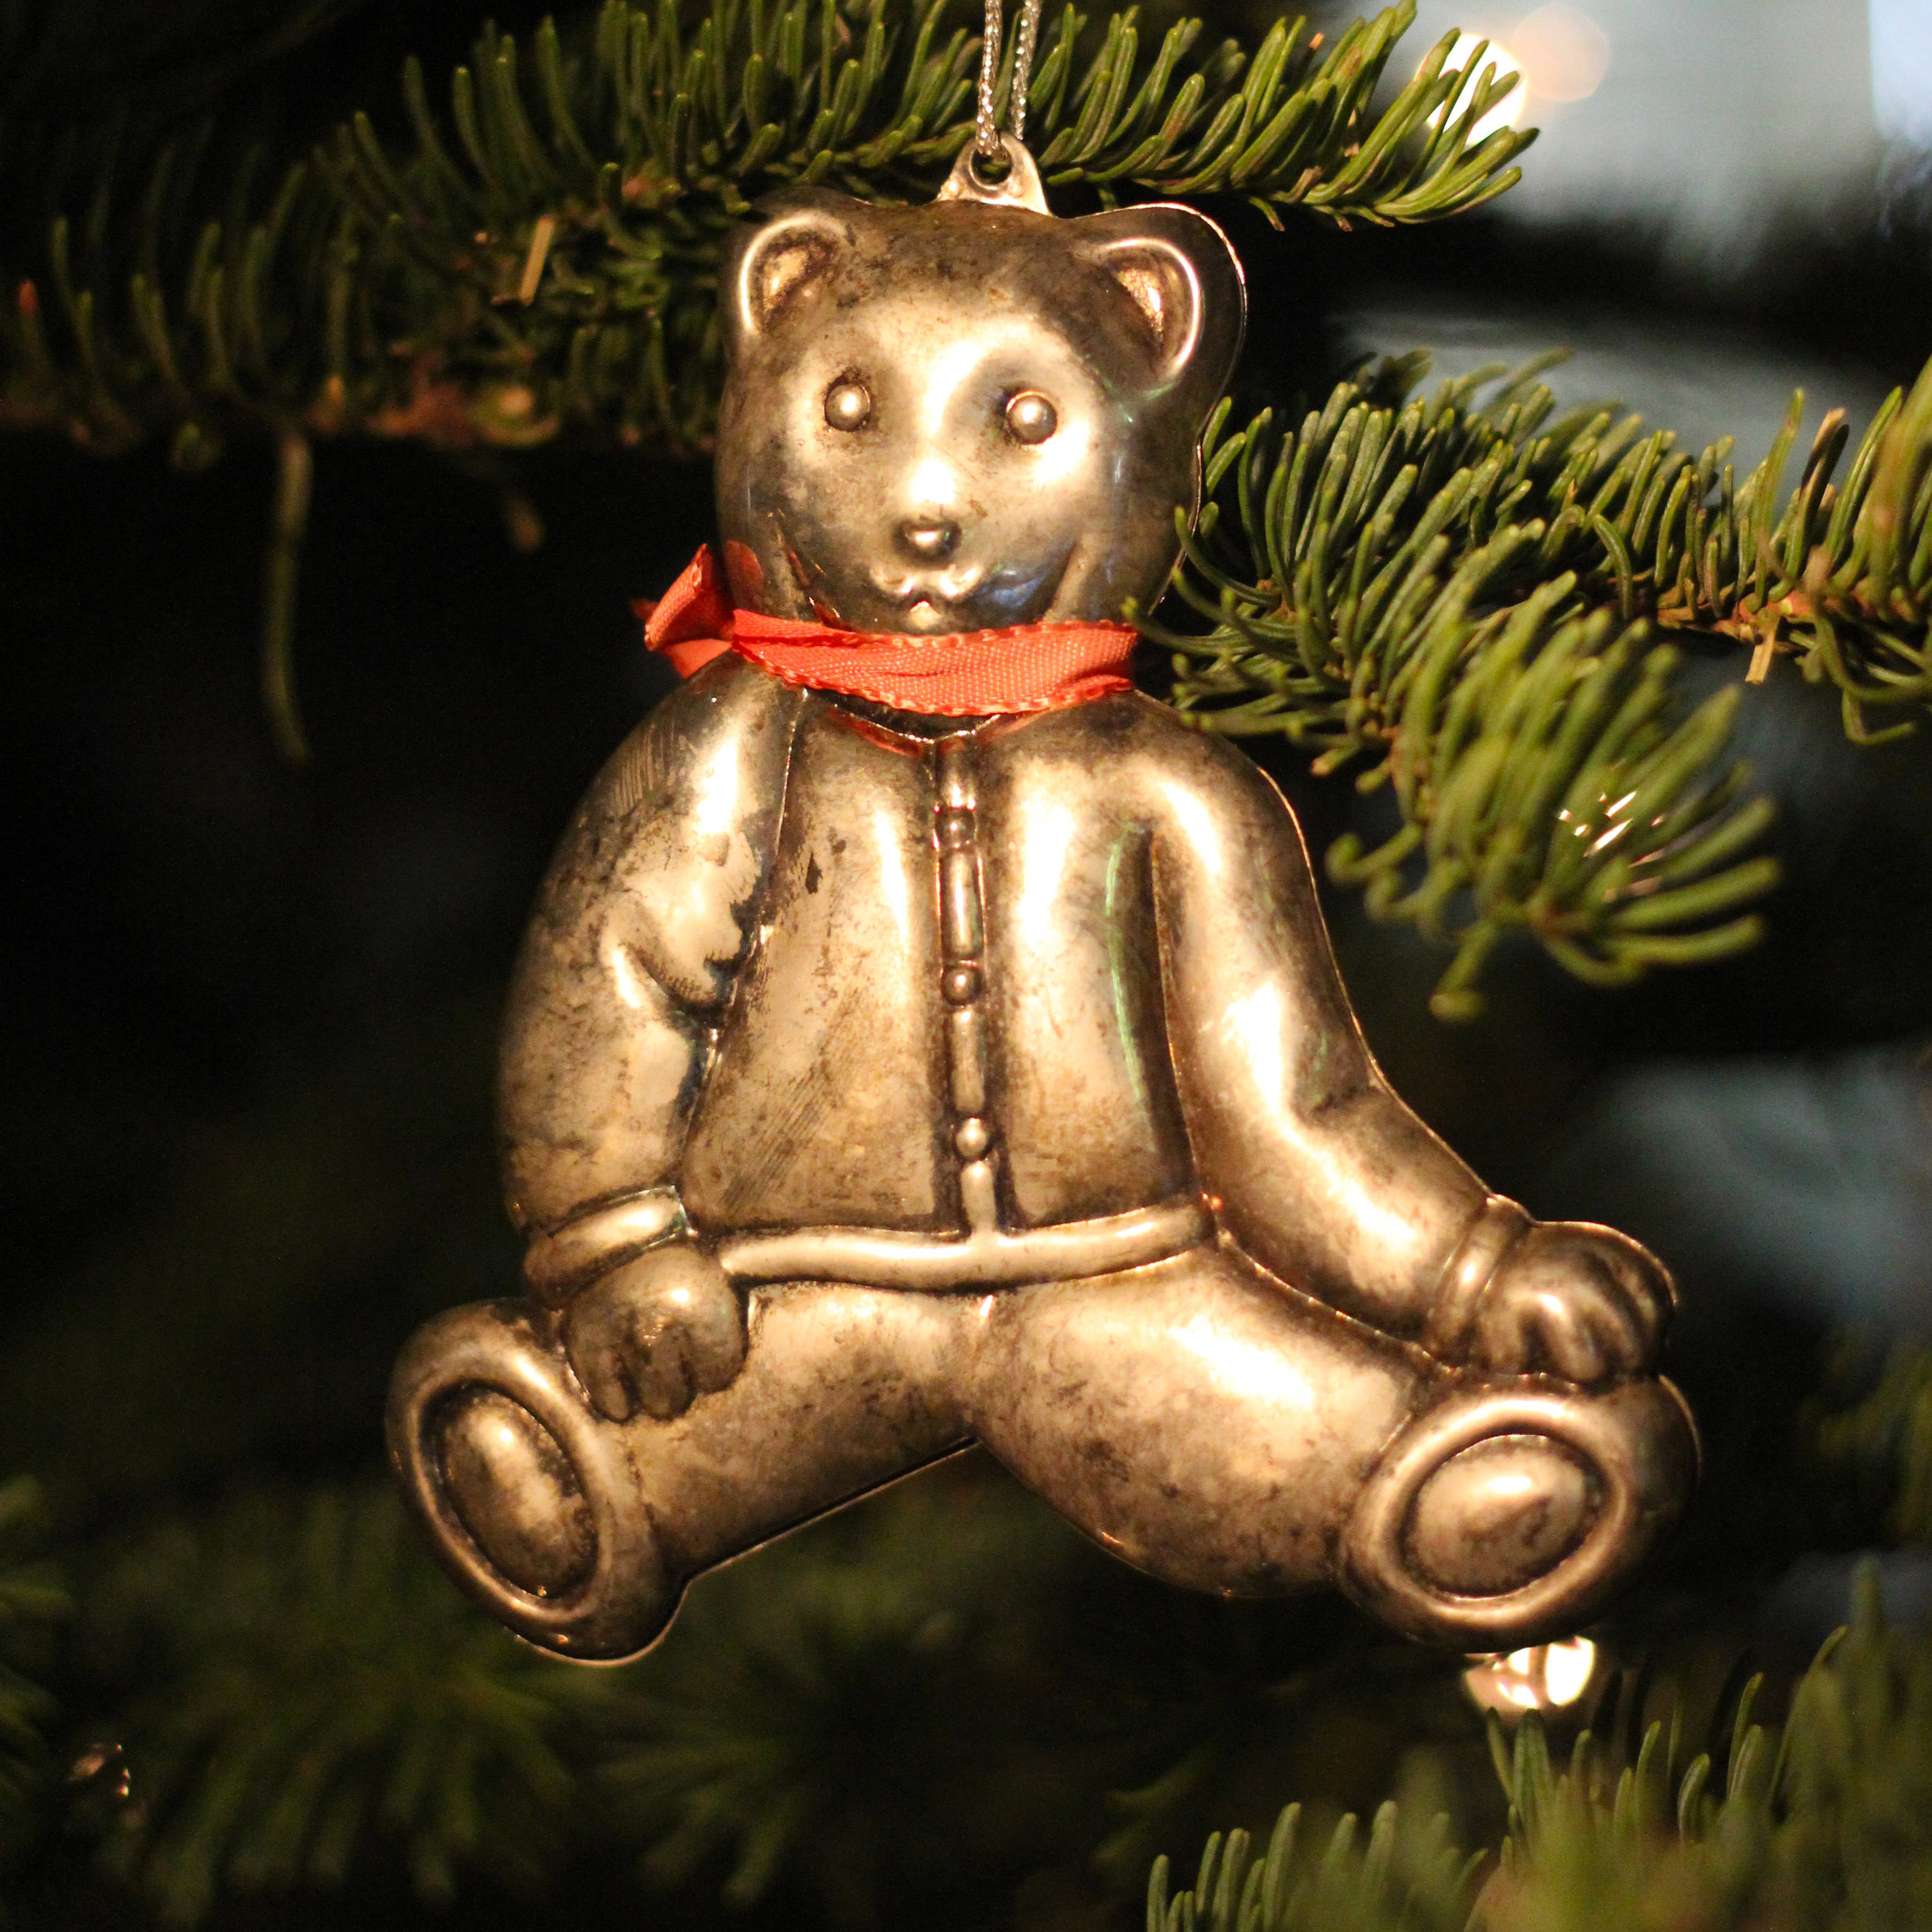 And your other tin ornaments.